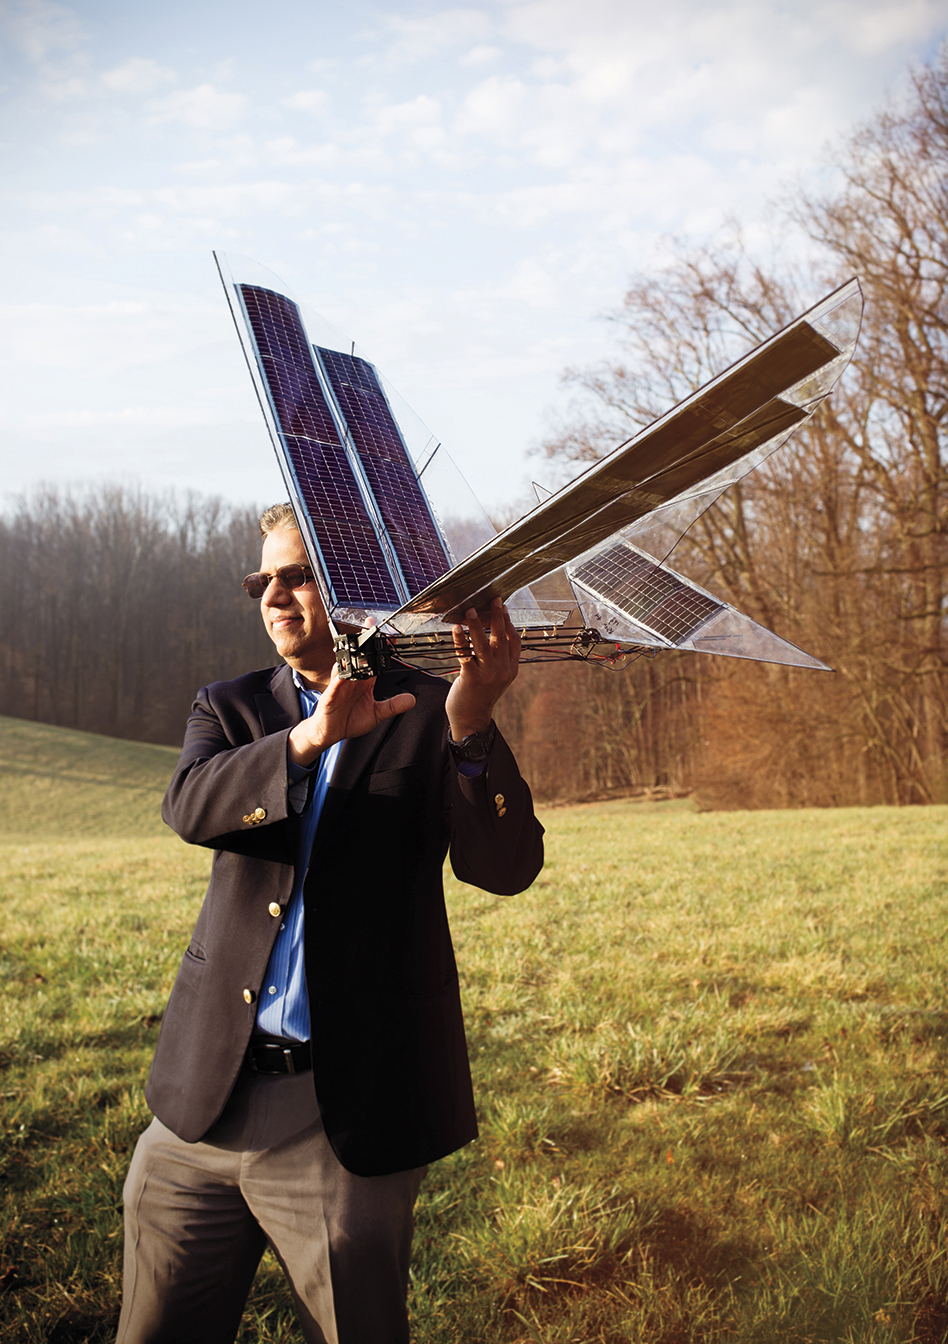 Satyandra K. Gupta, who led the development team, gets ready to launch Robo Raven III, which is capable of partially recharging in flight. Mike Fernandez/Audubon